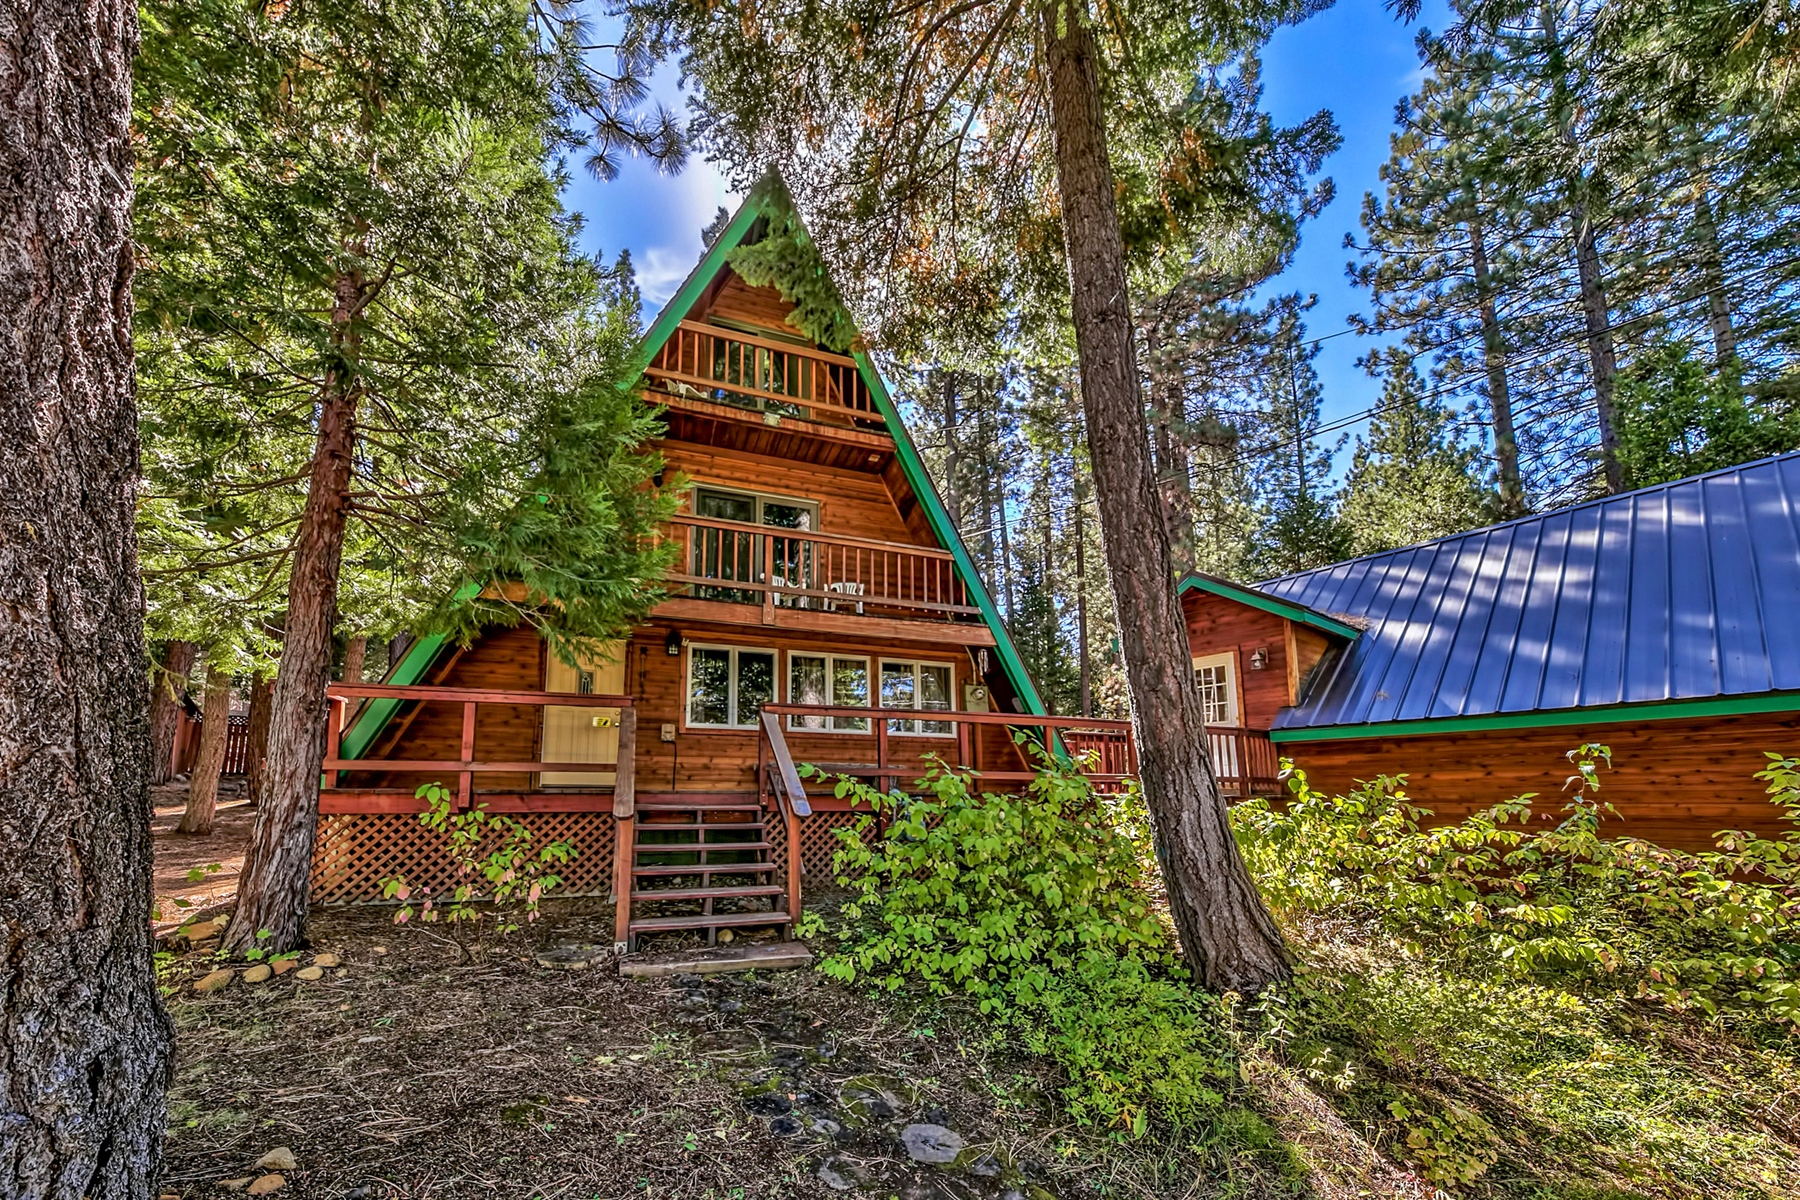 Single Family Home for Active at 1687 Mohican Drive, South Lake Tahoe, CA 96150 1687 Mohican Drive South Lake Tahoe, California 96150 United States